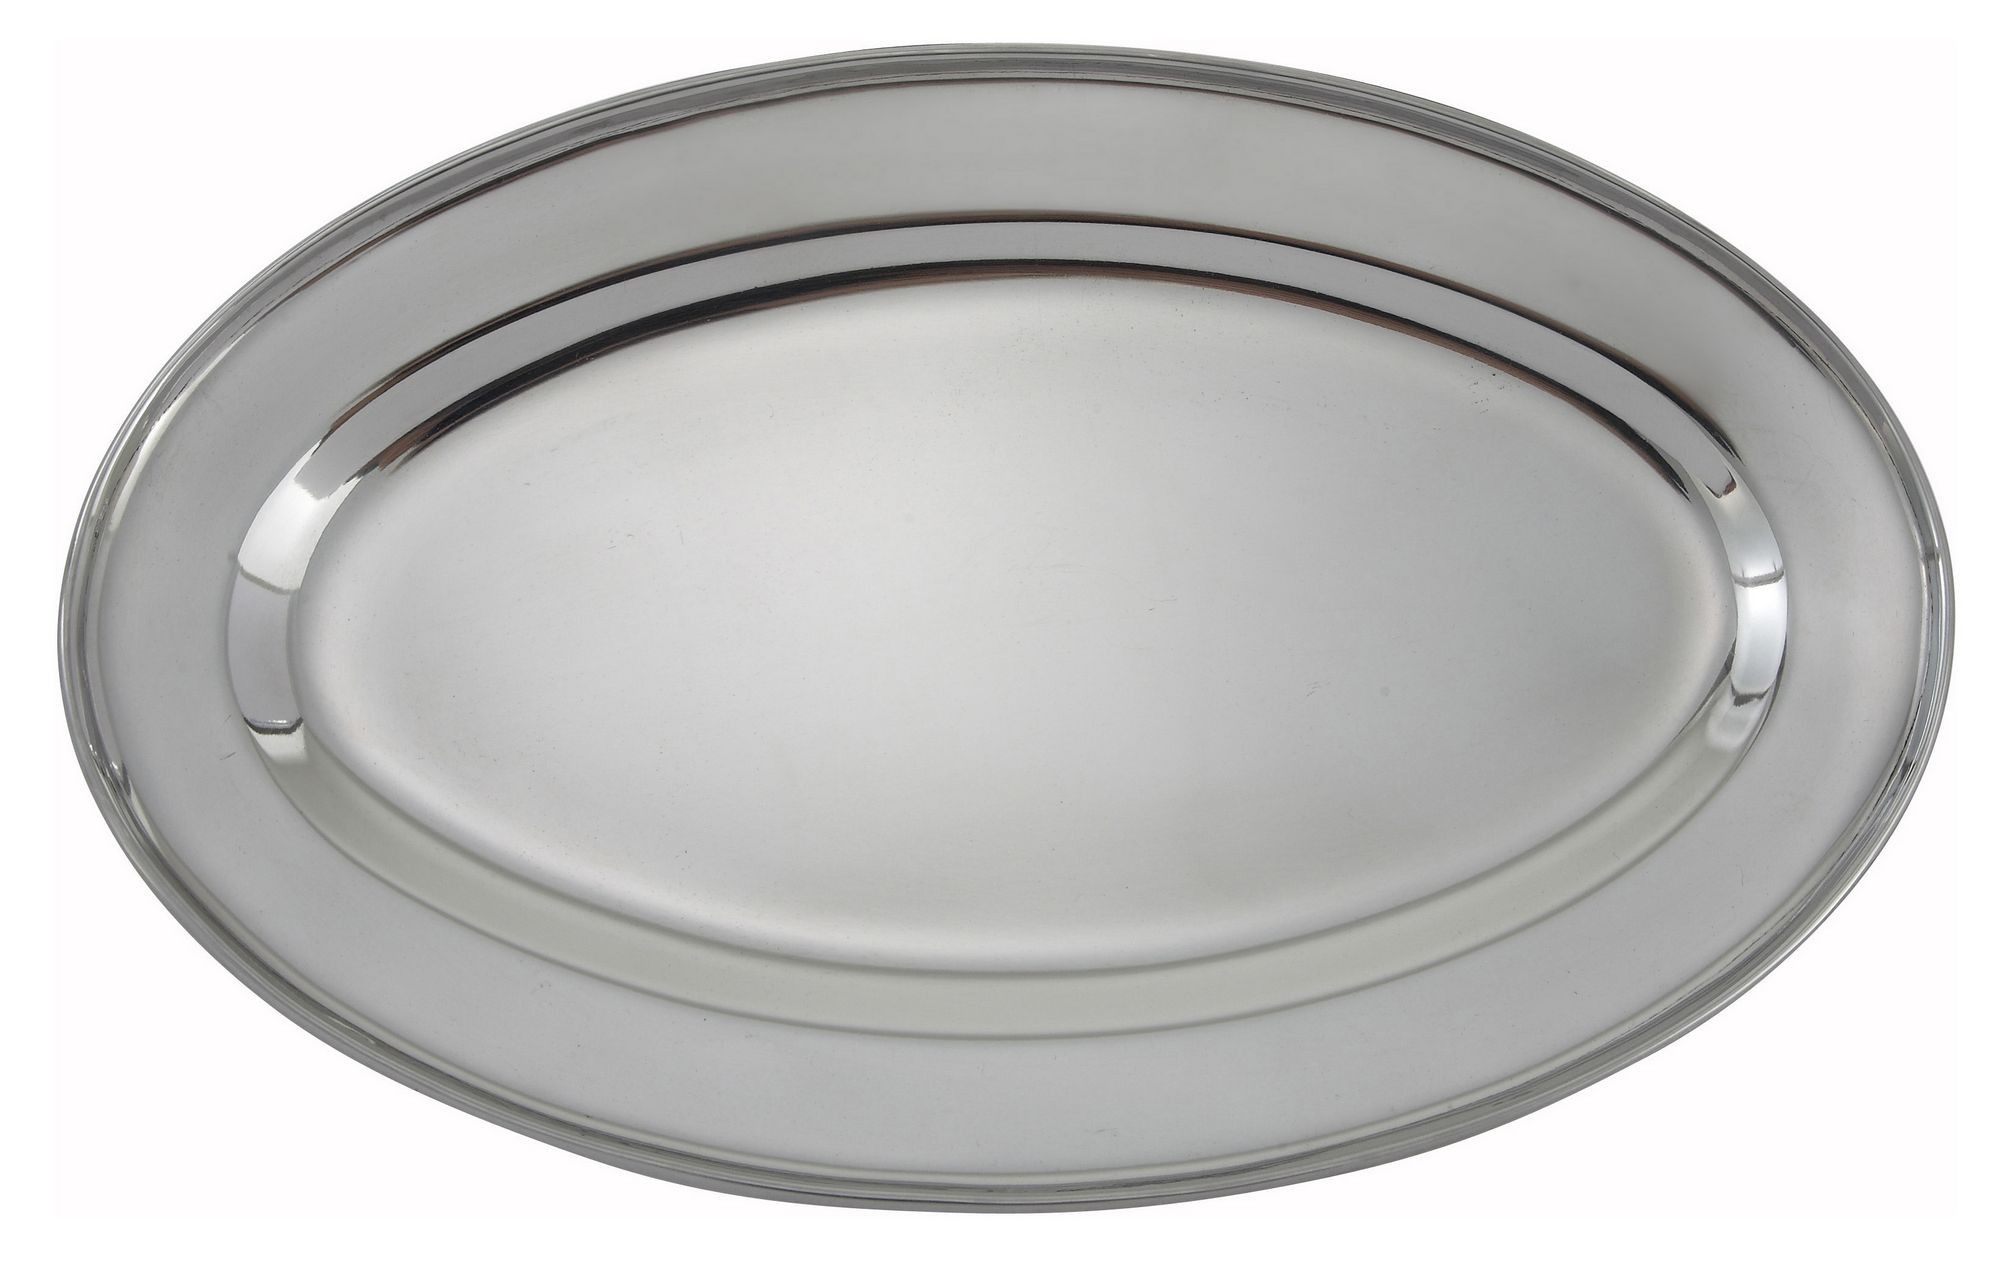 "Winco OPL-16 Stainless Steel Oval Platter - 16"" x 10-1/4"""